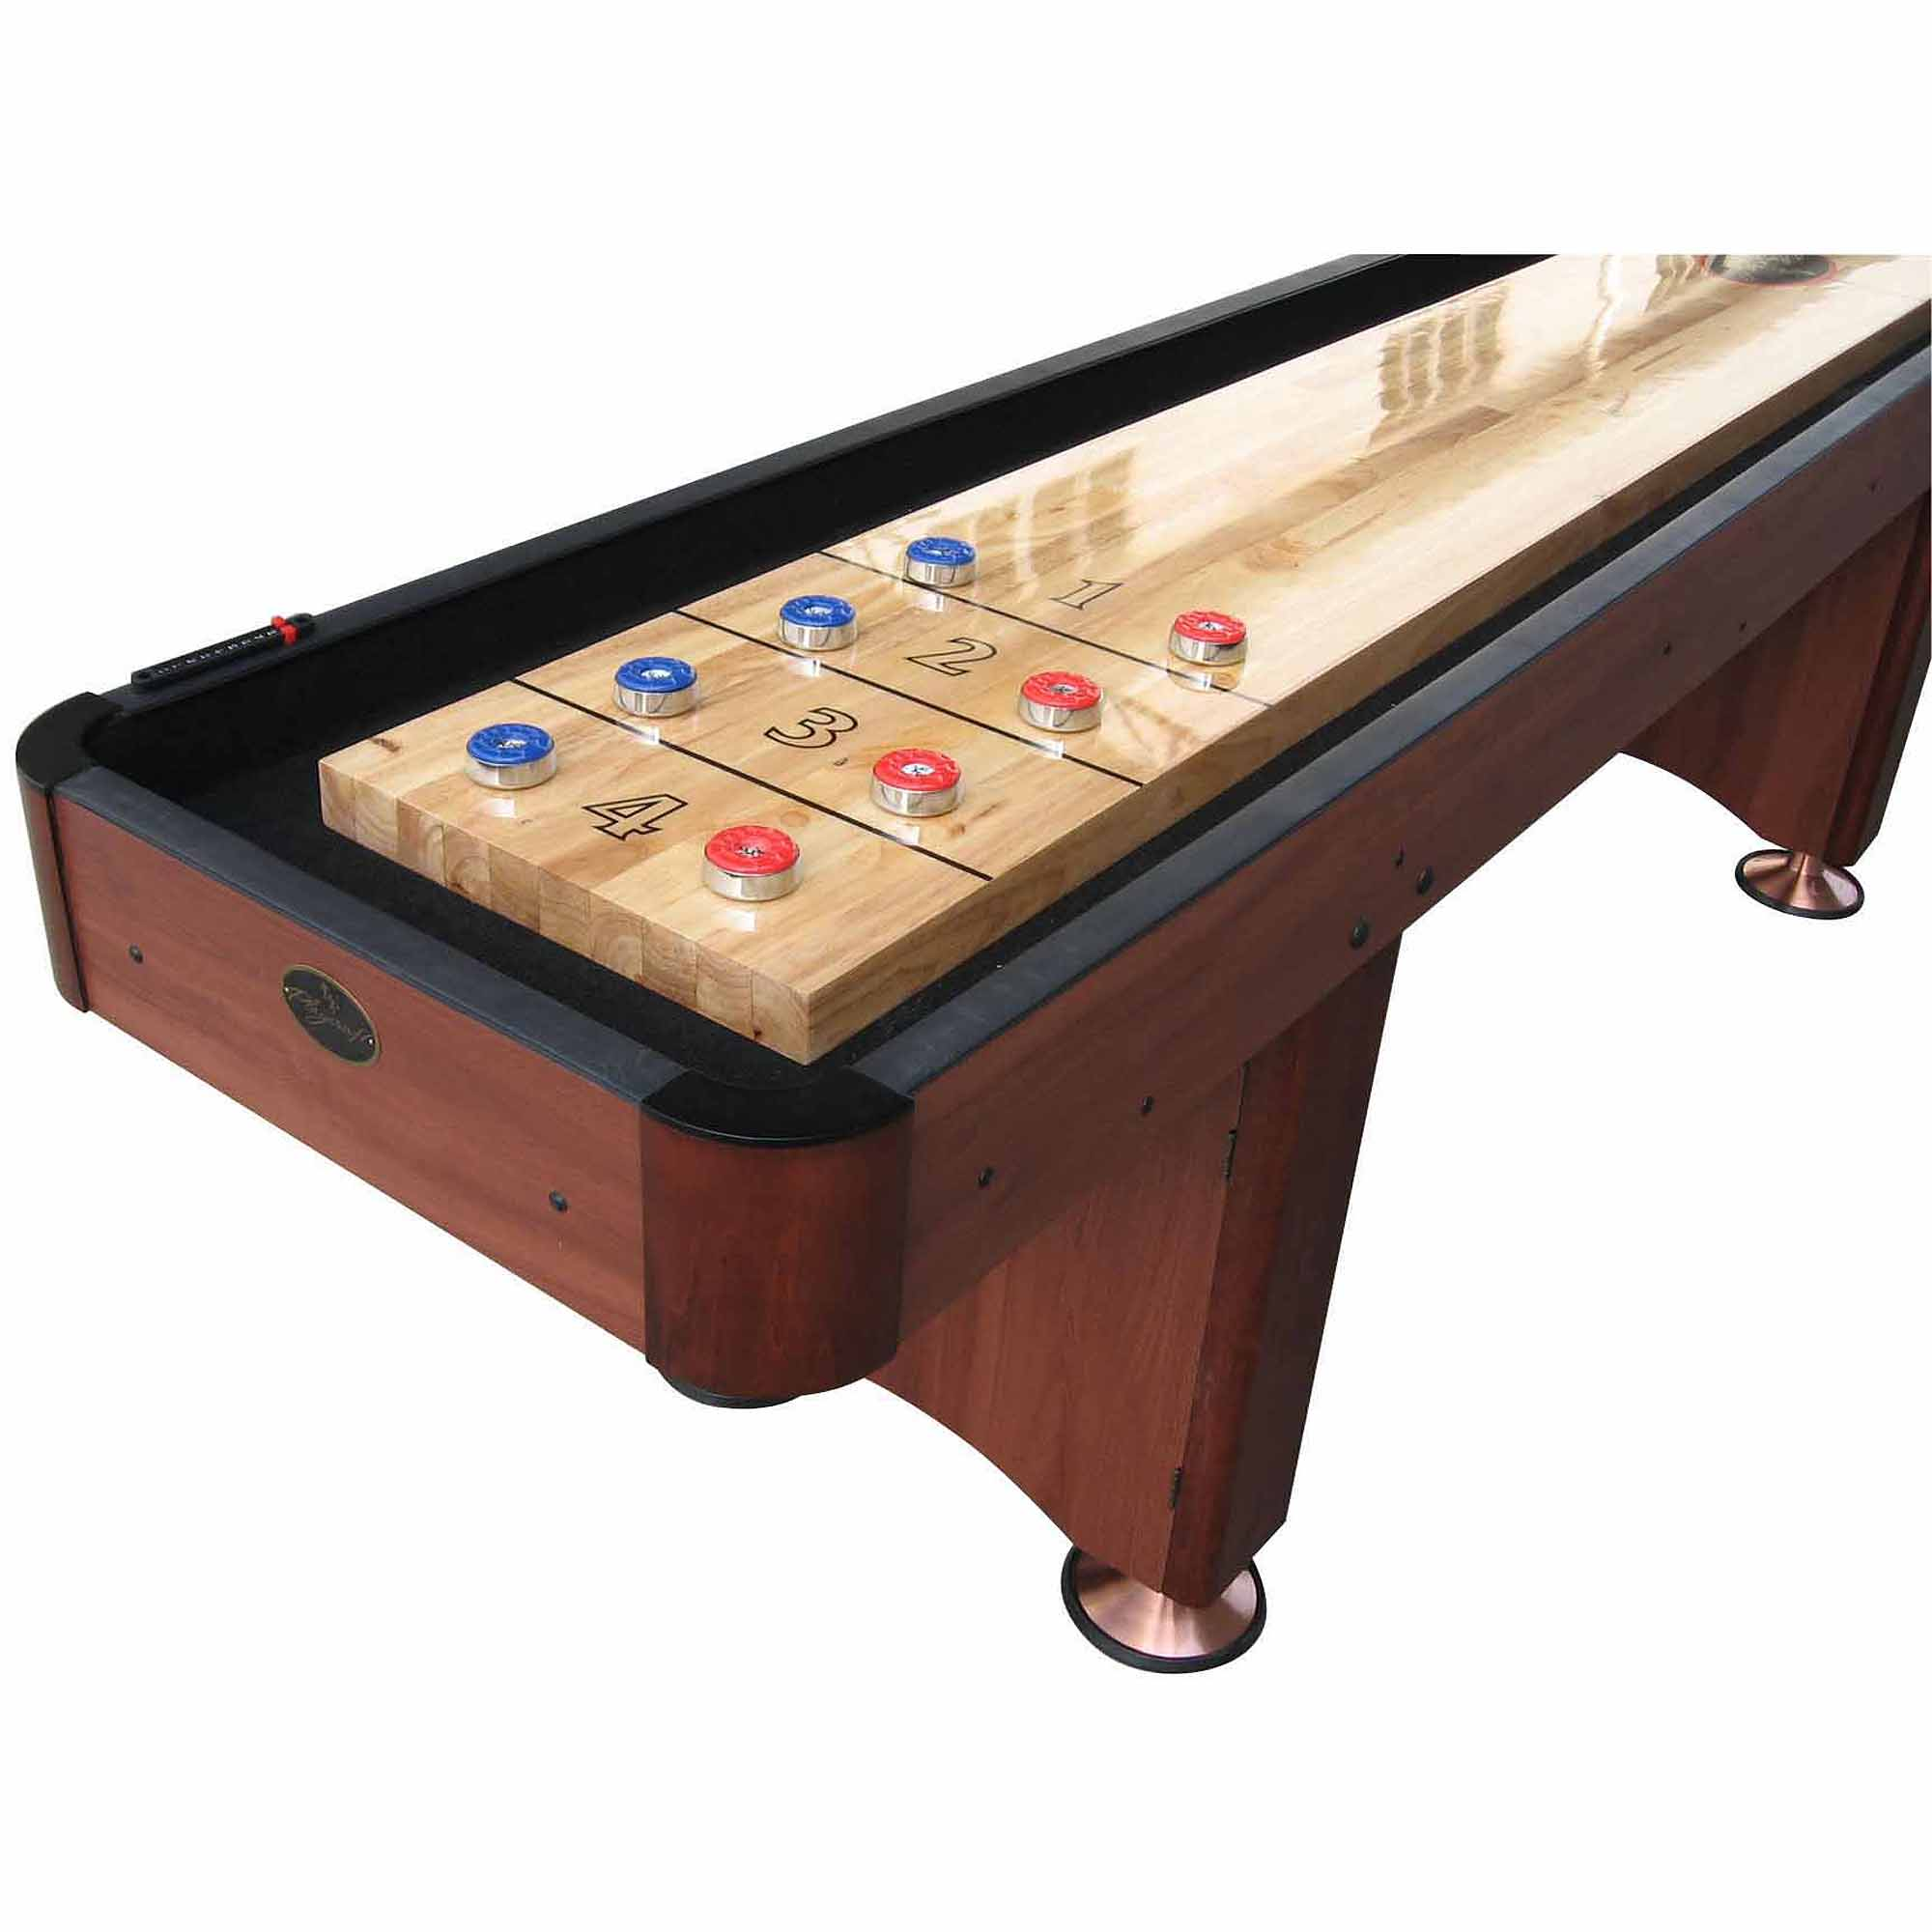 Playcraft Woodbridge Cherry 16' Shuffleboard Table